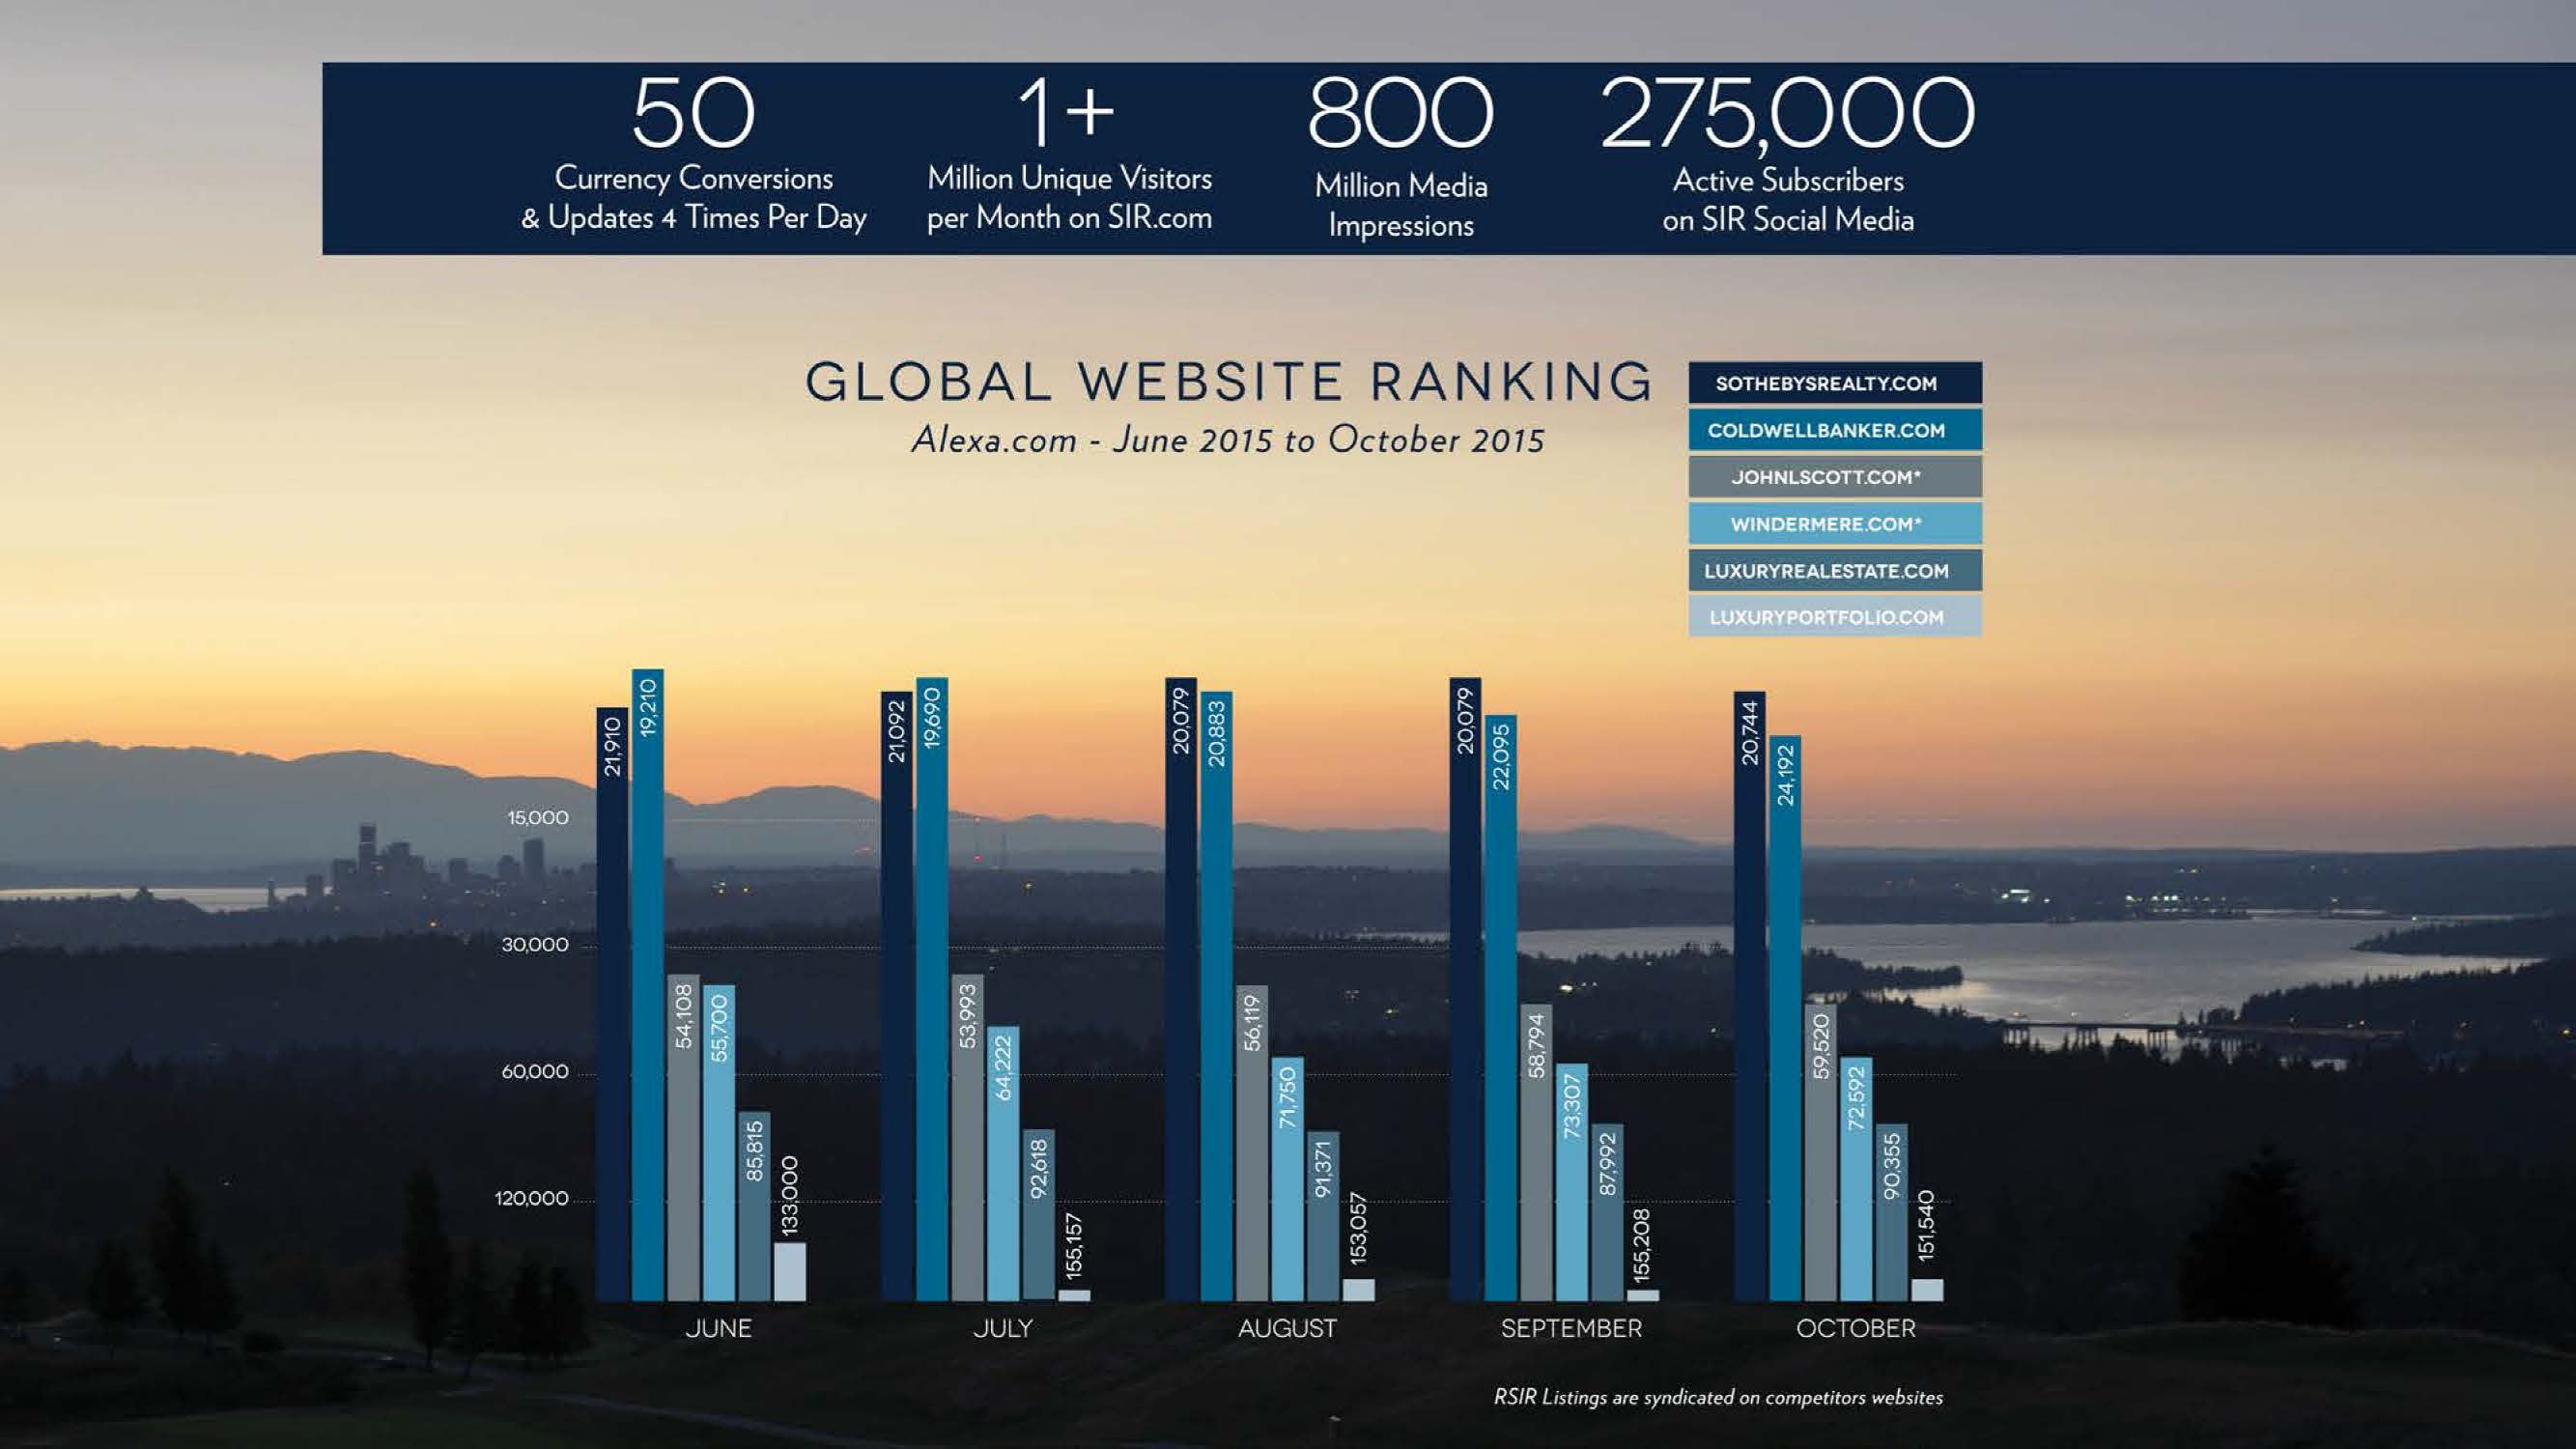 Above: Andrea Savage Shared a Graph of Global Website Rankings, Indicating High Traffic Volume for SIR.com